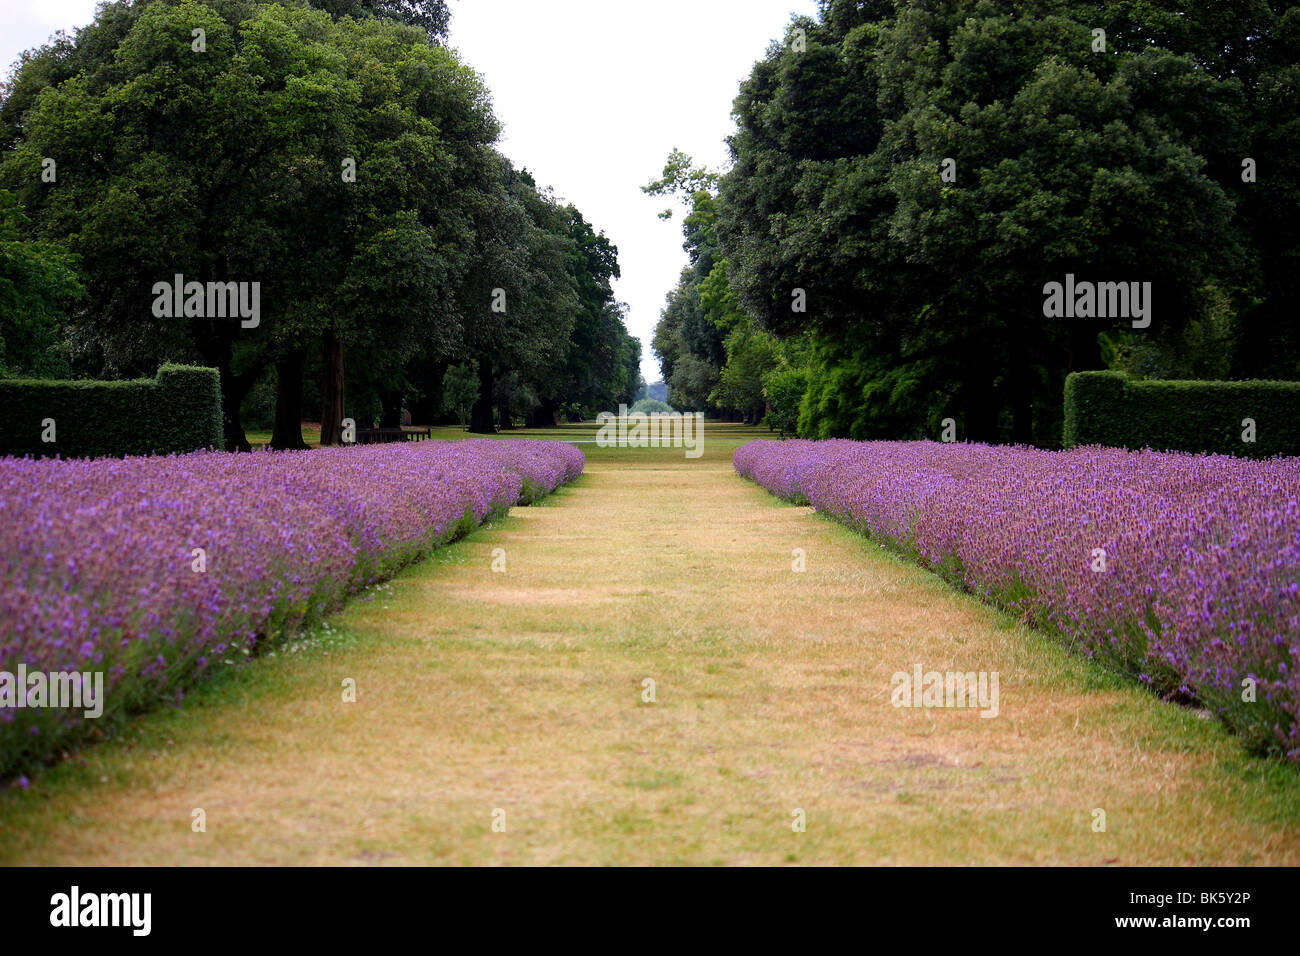 A view flanked by Lavenders - Stock Image